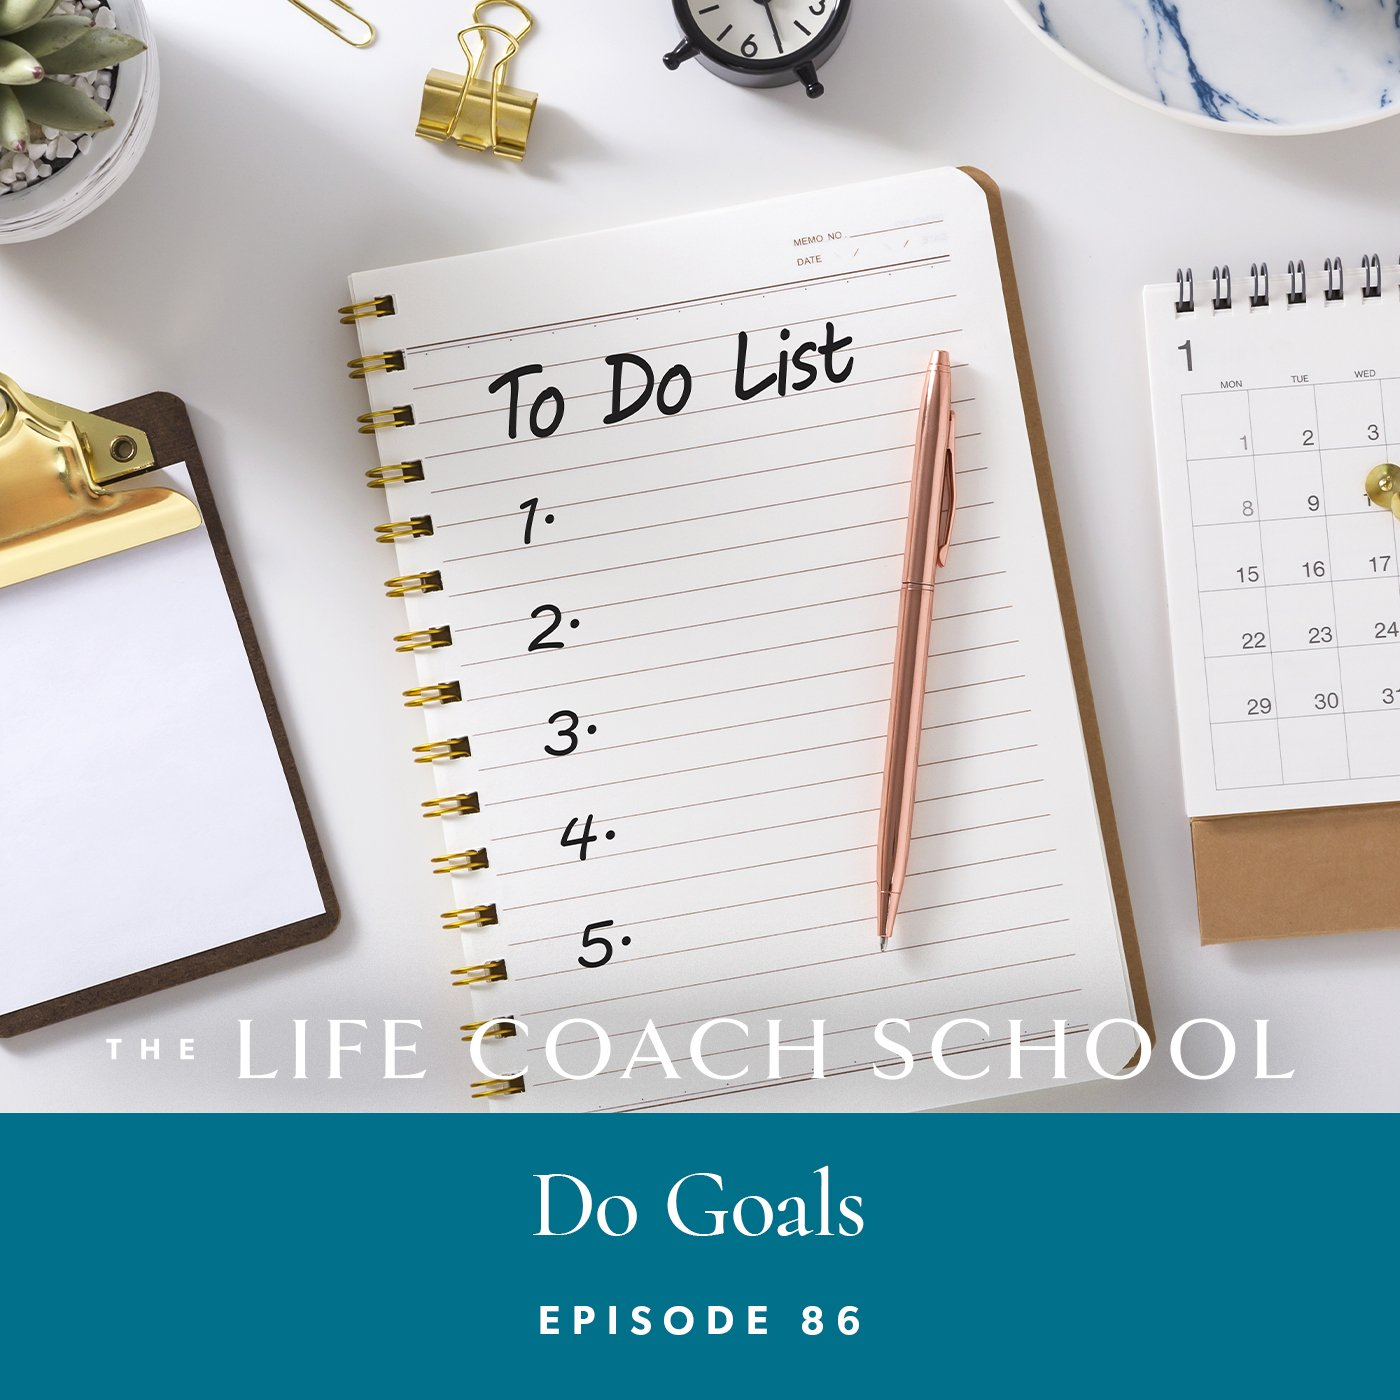 The Life Coach School Podcast with Brooke Castillo | Episode 86 | Do Goals